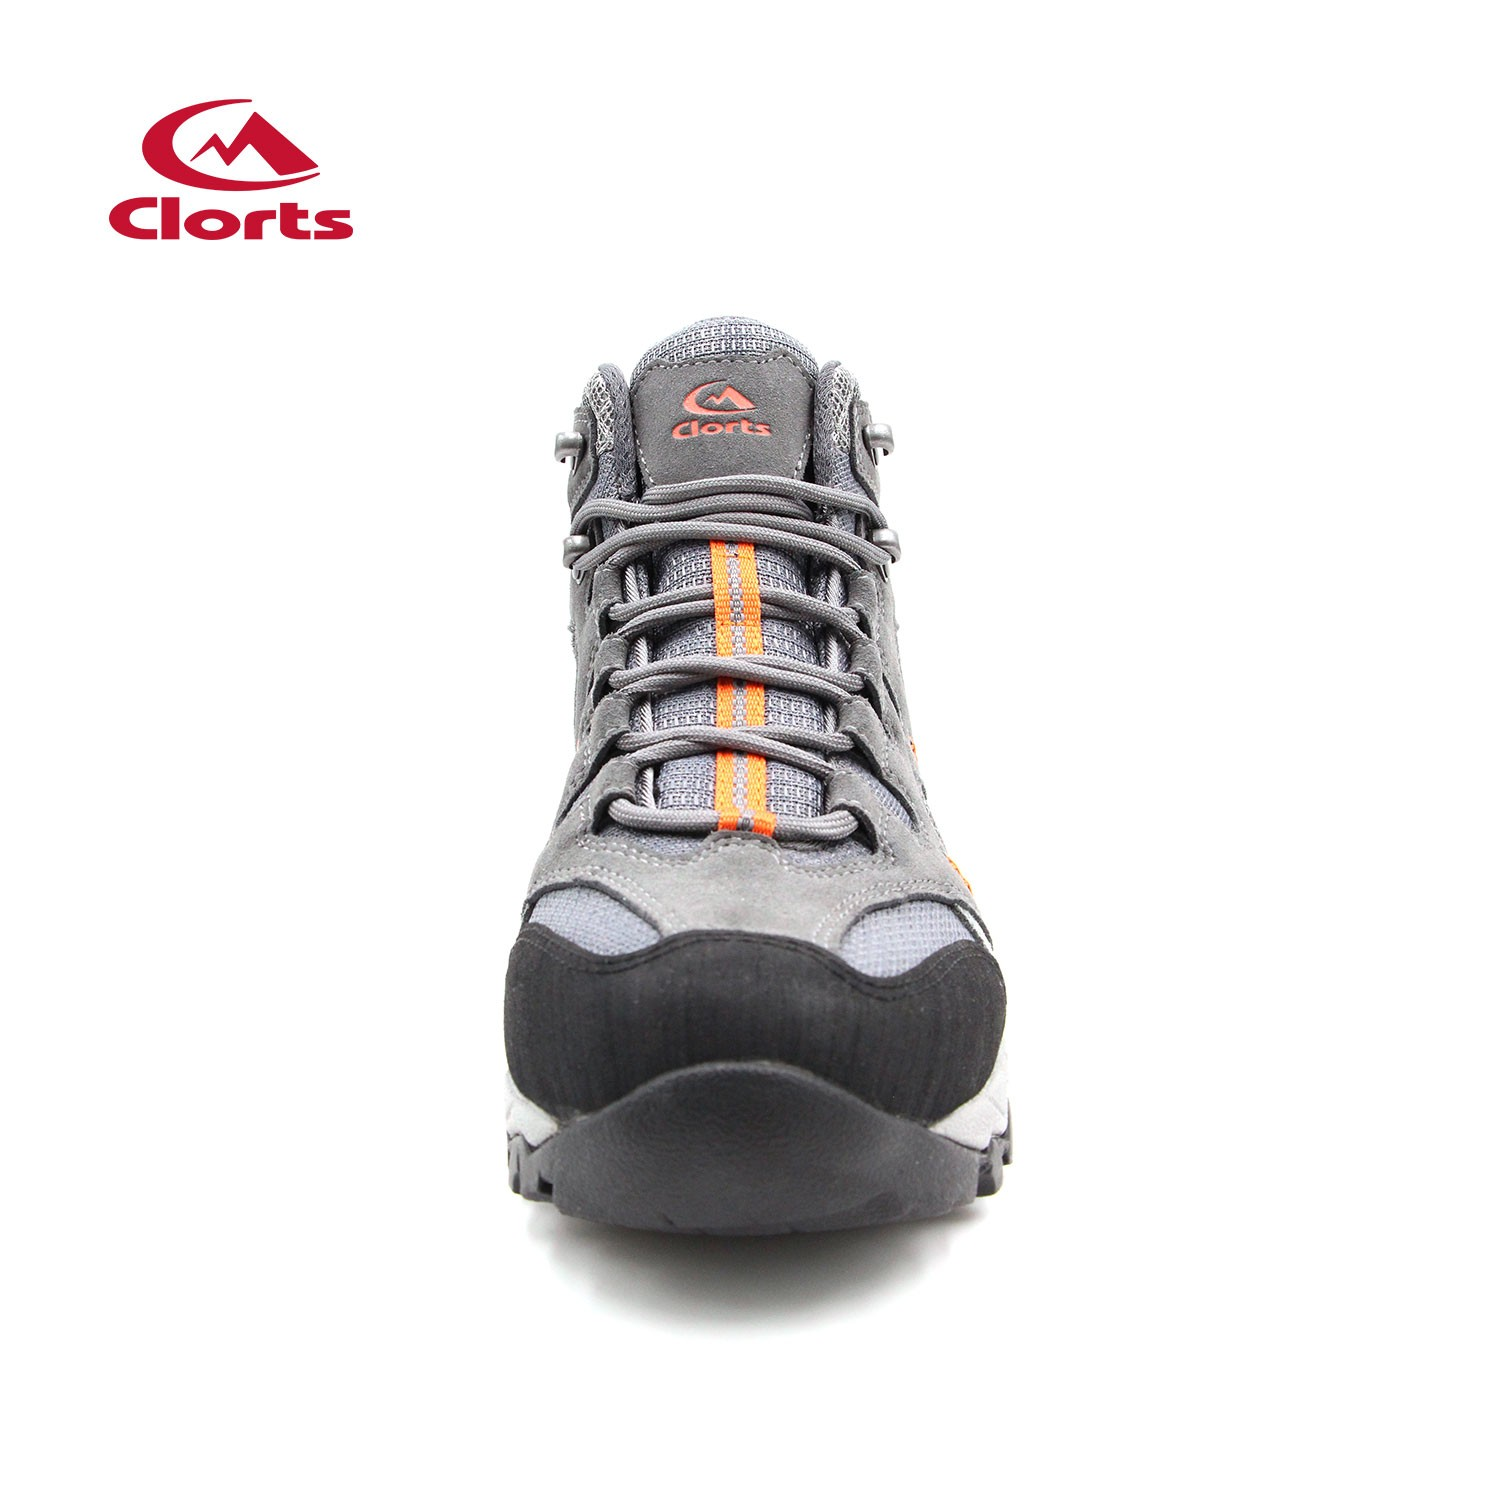 Clorts Adults Outdoor Waterproof Hiking Boots Grey Manufacturers, Clorts Adults Outdoor Waterproof Hiking Boots Grey Factory, Supply Clorts Adults Outdoor Waterproof Hiking Boots Grey